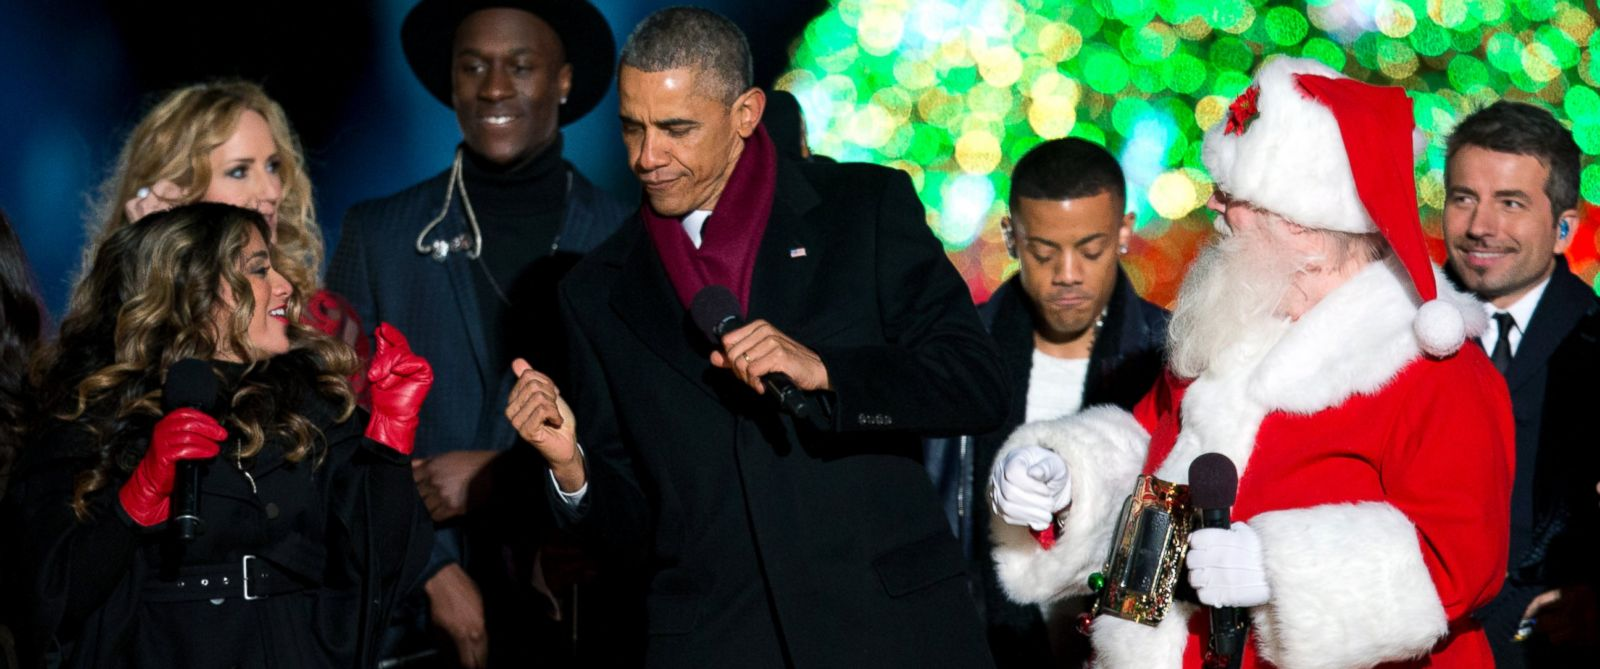 how not to embarrass yourself at the company holiday party abc news photo president barack obama dances on stage during the national christmas tree lighting ceremony at